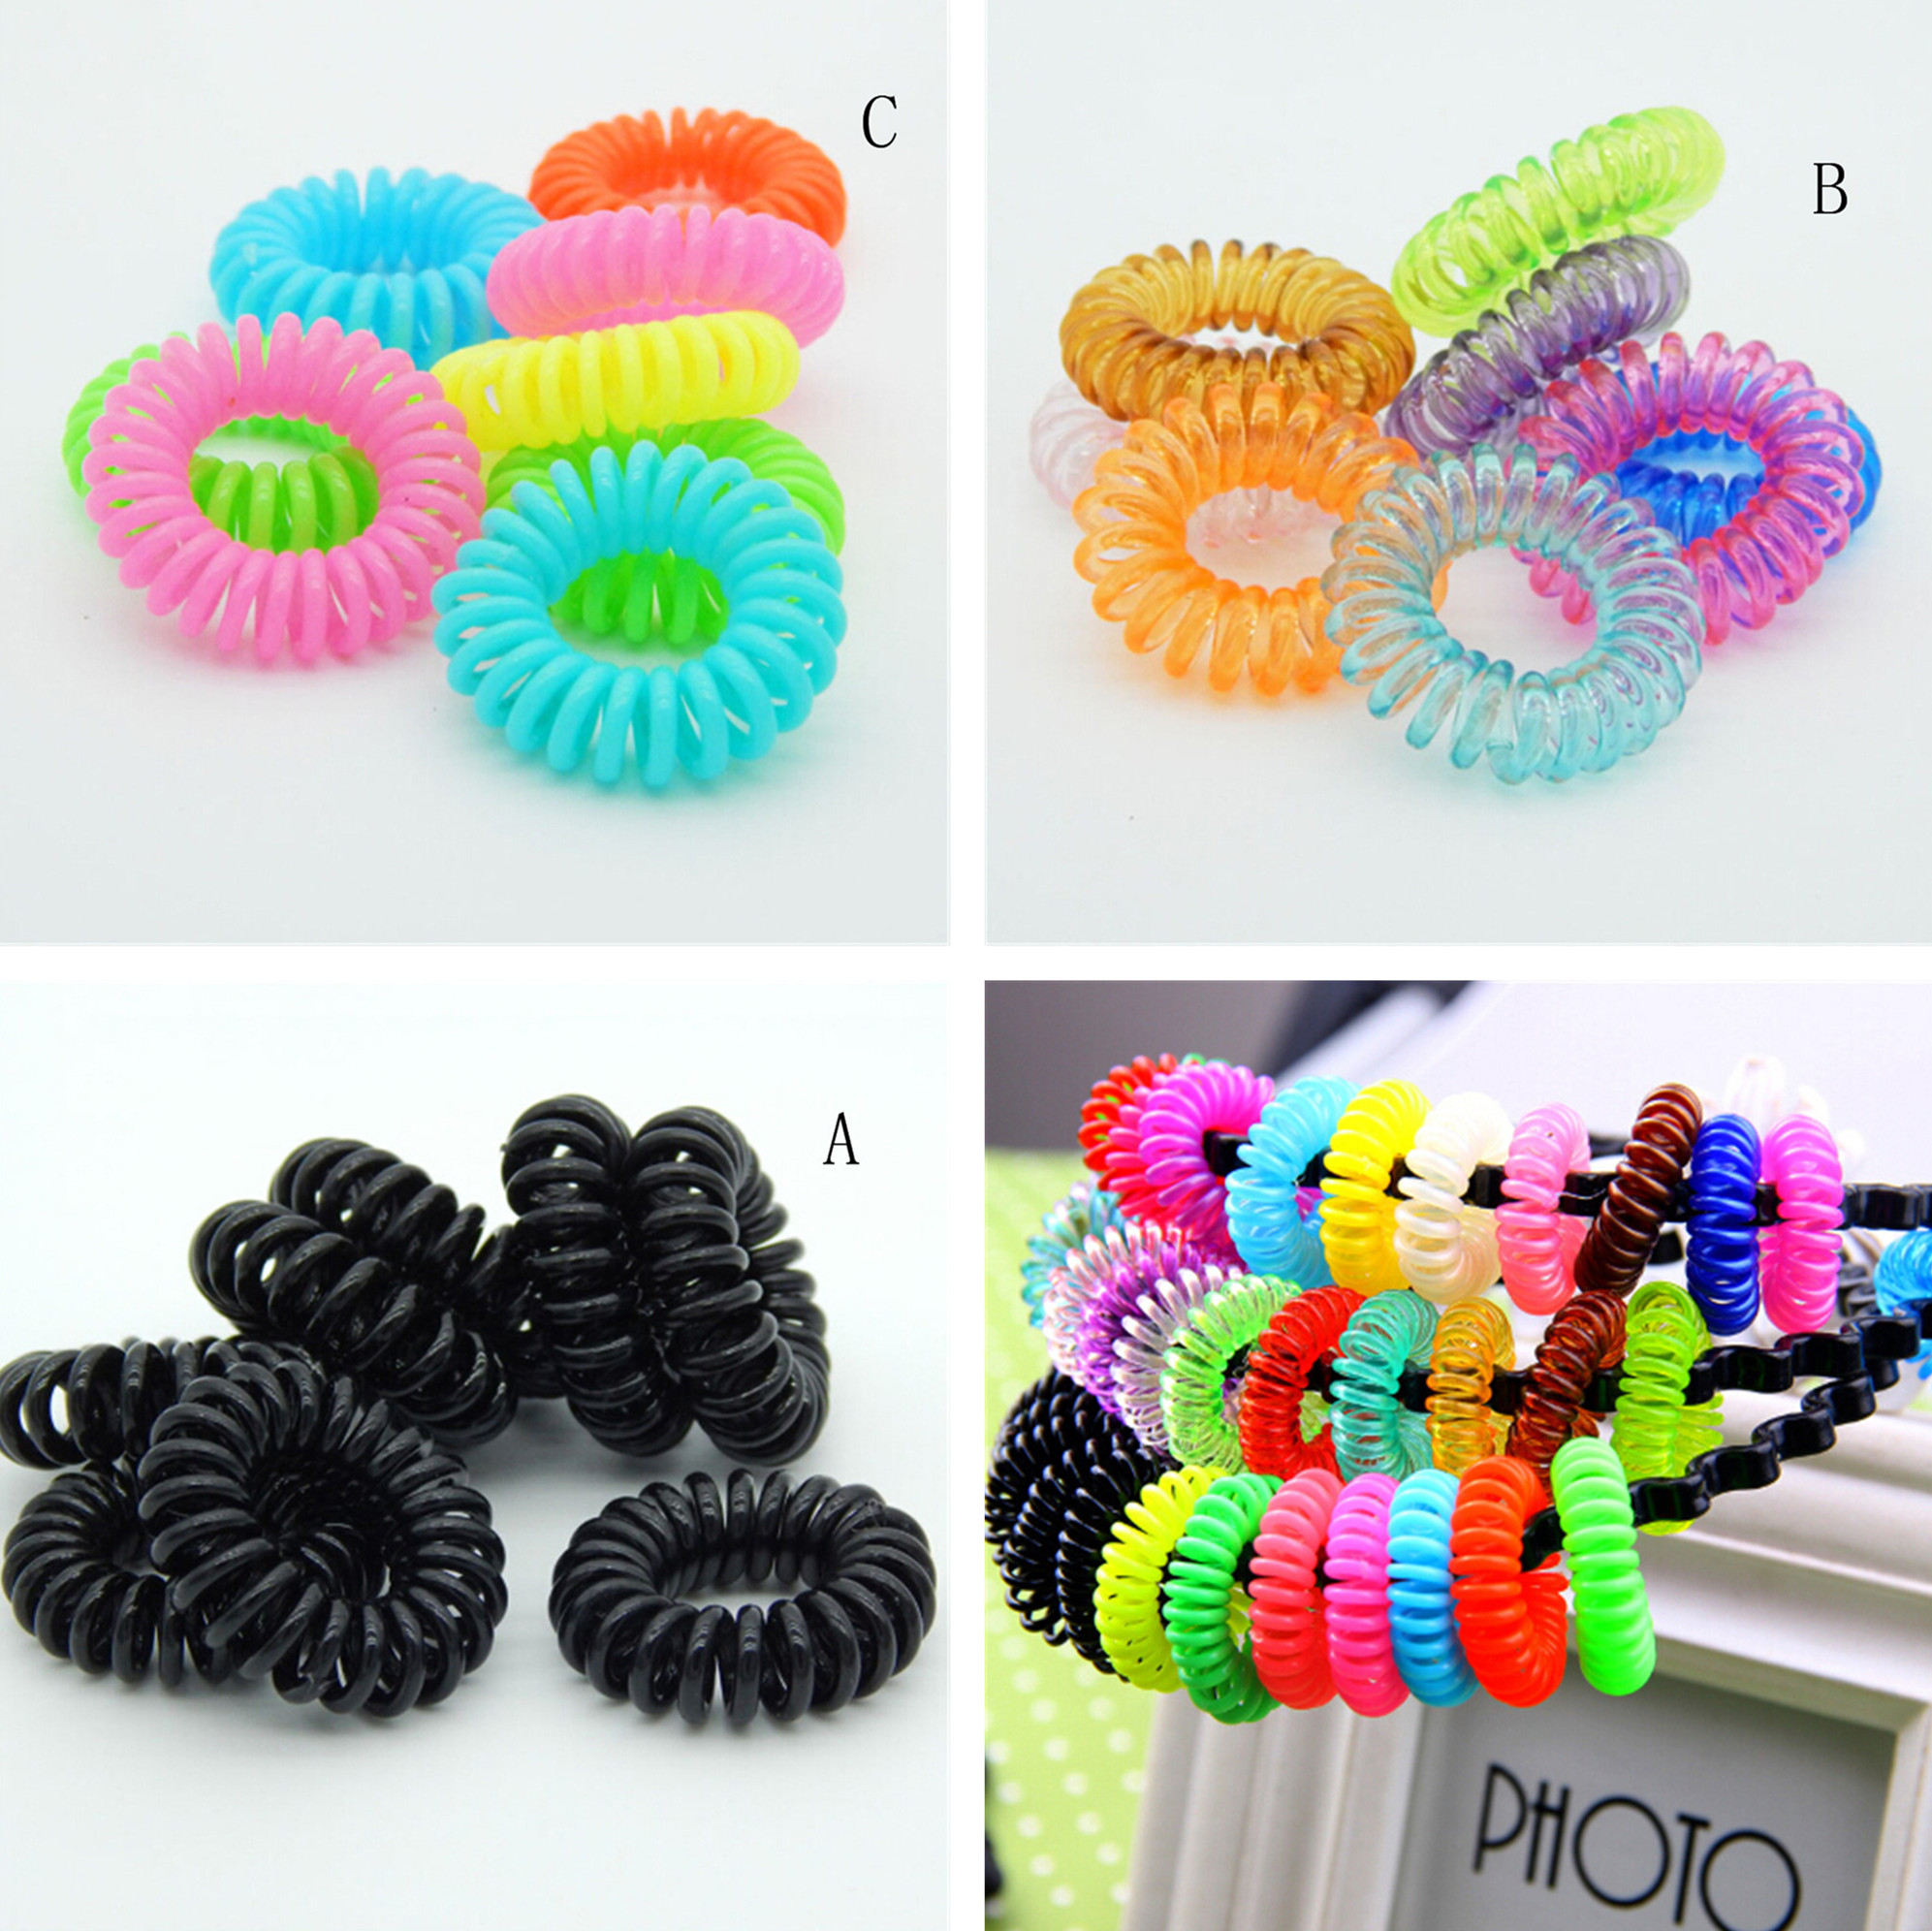 10Pcs Multicolor Elastic Hair Bands Spiral Shape Ponytail Hair Ties Gum Rubber Band Hair Rope Telephone Wire Hair Accessories